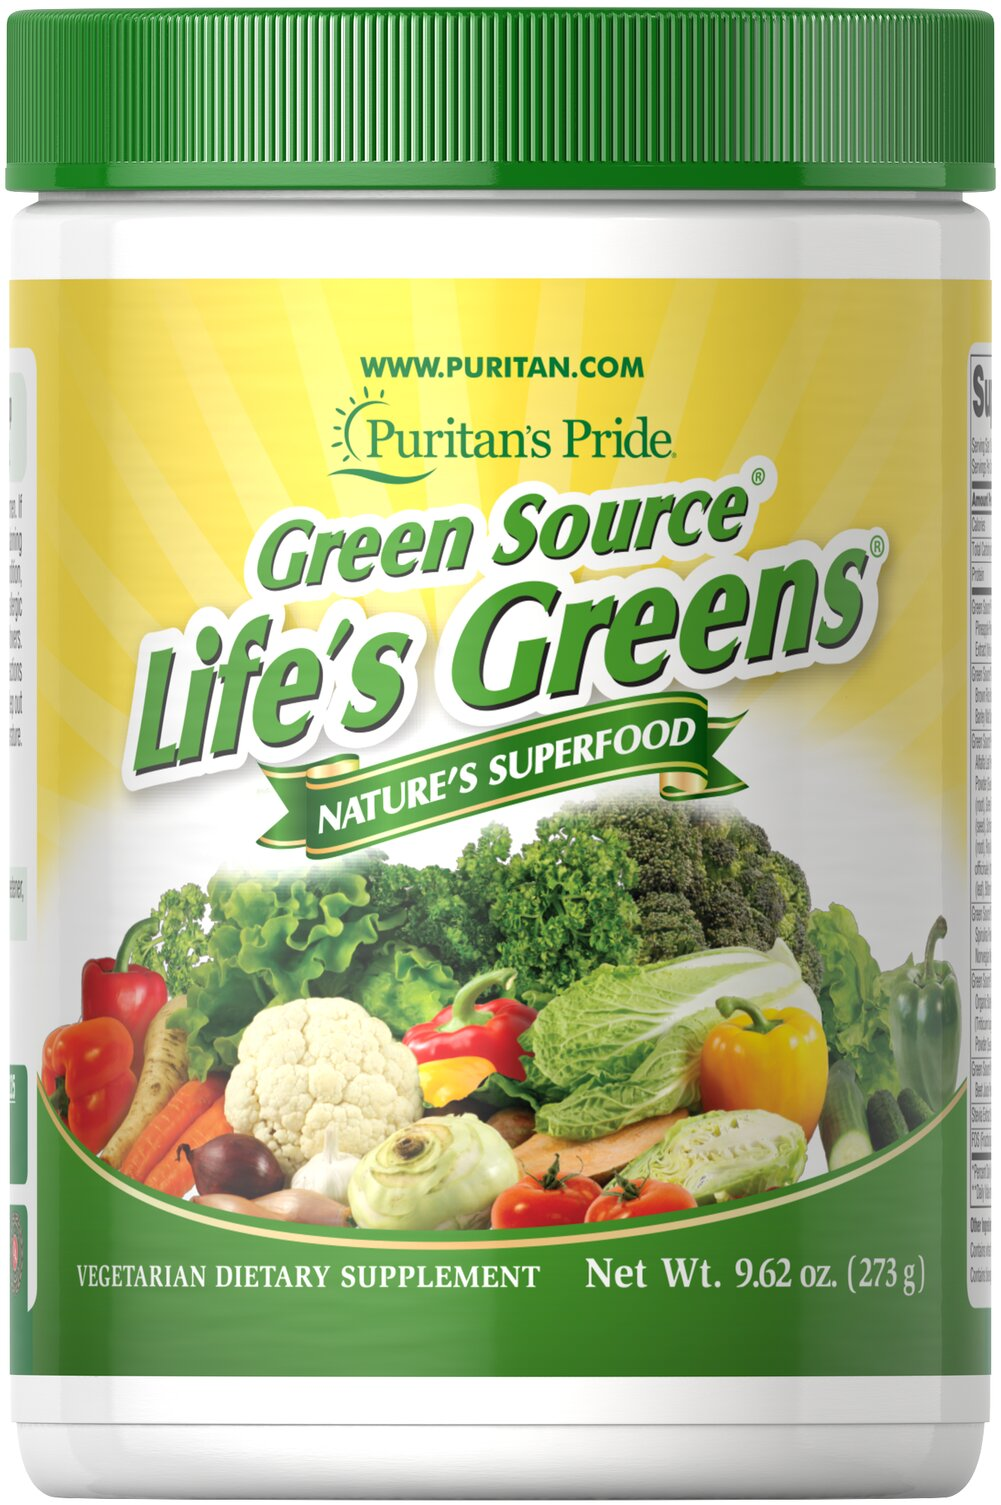 Life's Greens® with Advanced Probiotic Formula <p>With over 35 active ingredients, Life's Greens® powder provides important green factors to give you the optimal edge you need to energize your day.**</p><p></p>Free Of: Yeast, Preservatives, Artificial Color, Artificial Flavor<p></p><p>Oxyphyte® is a registered trademark of RFI Blending LLC.</p> 9.62 oz Powder  $41.29